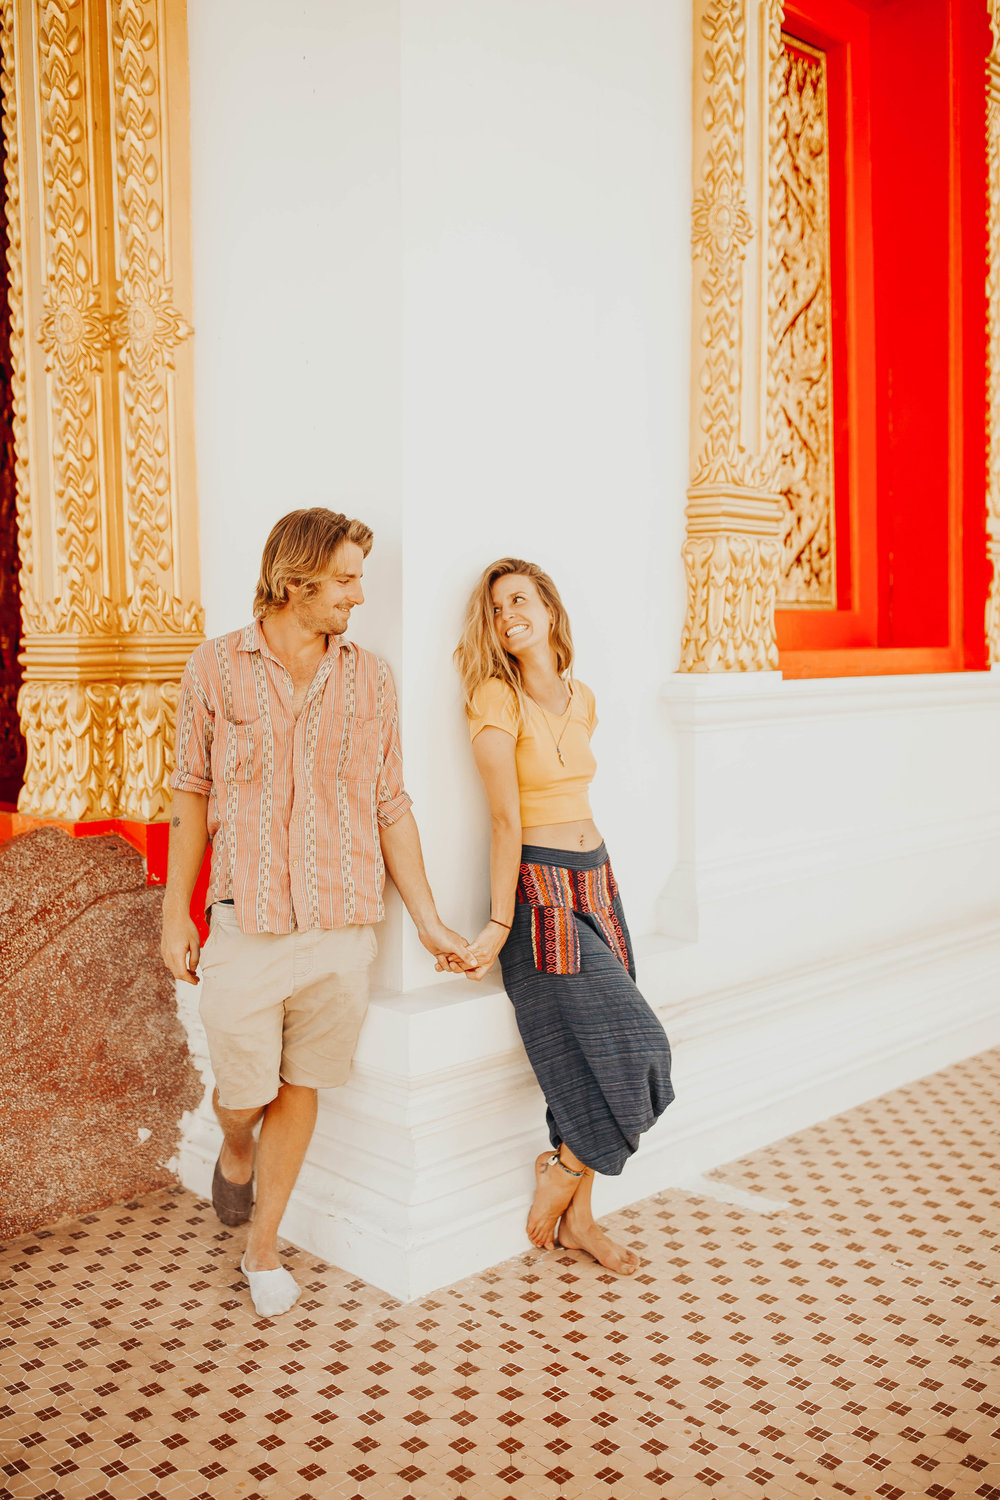 Julie and Will Old Town Phuket Couples Session 43.jpg